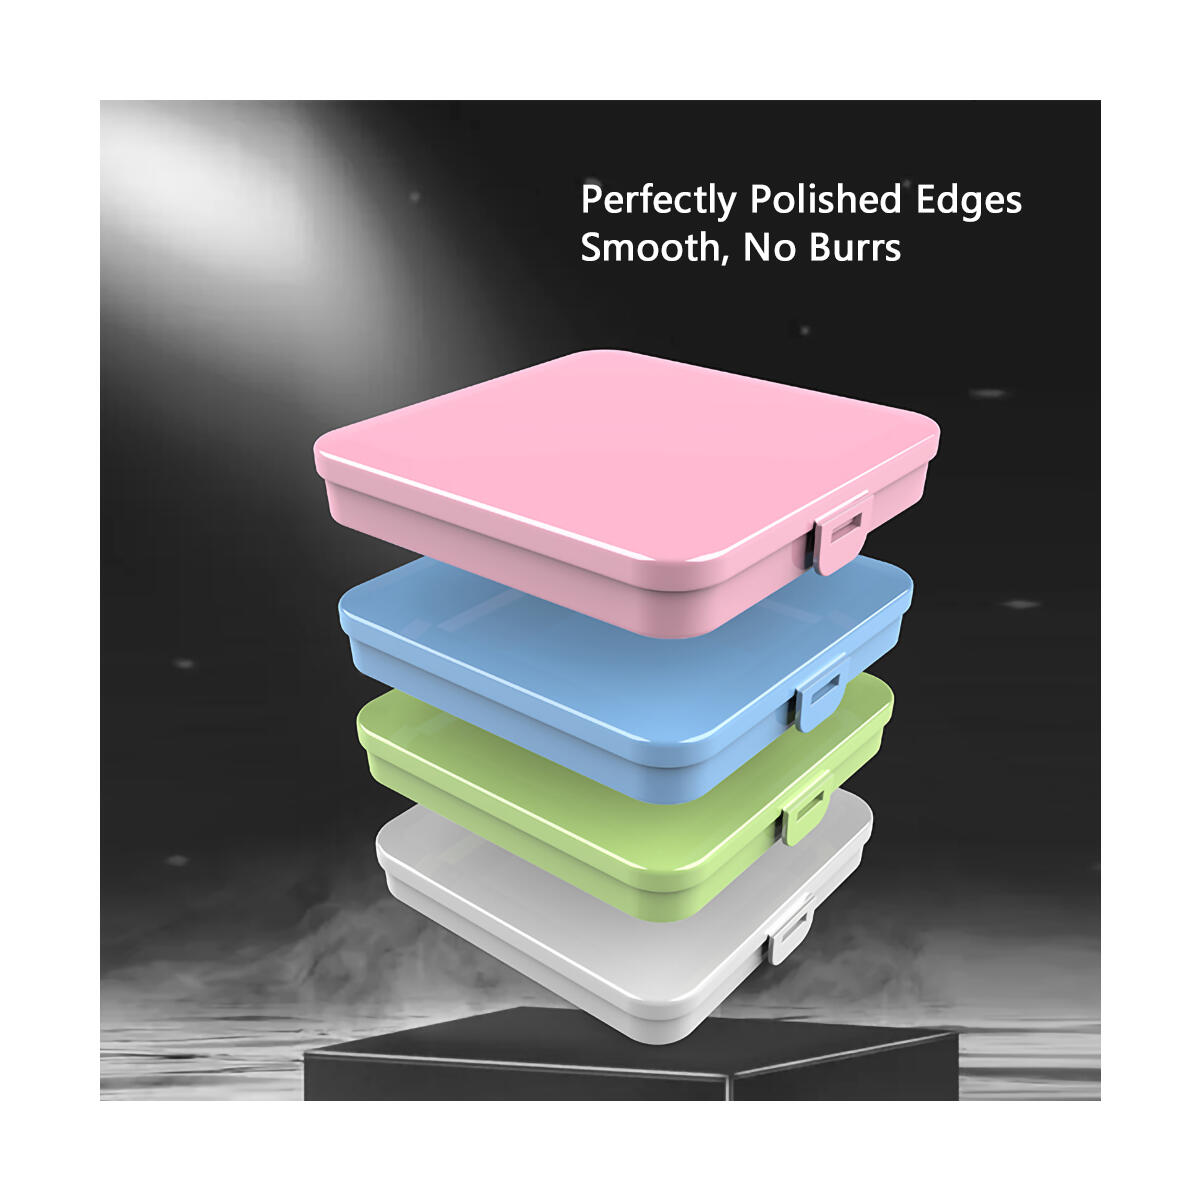 Food-Grade Plastic Mask Case - Perfectly Polished Mask Storage Case, No burrs - Thick Mask Case Holder for Reusable and Disposable Masks - Portable Mask Container